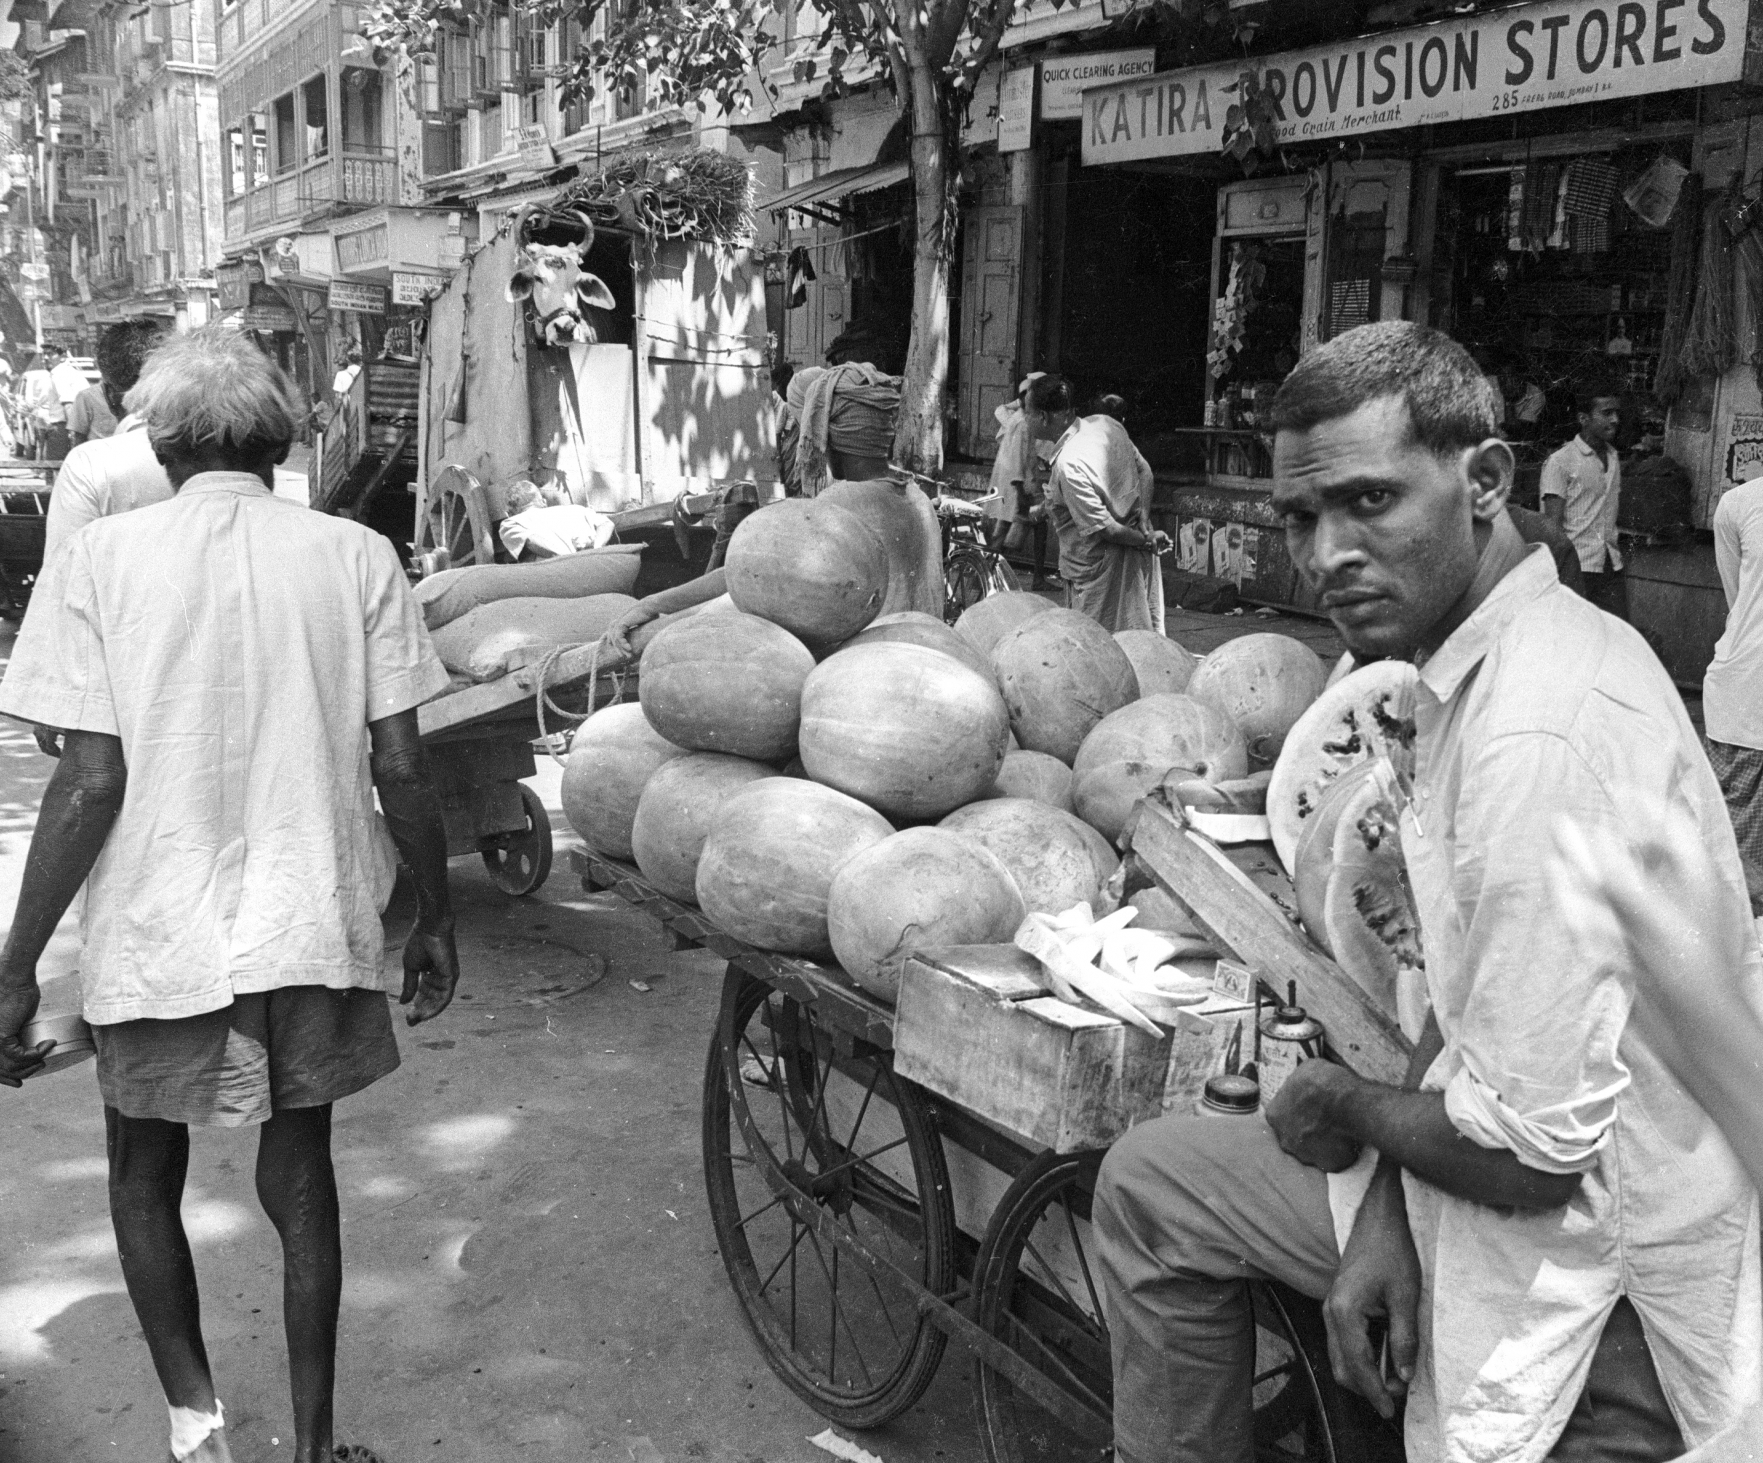 india 1970 - tranporting coconuts - cow in bombay